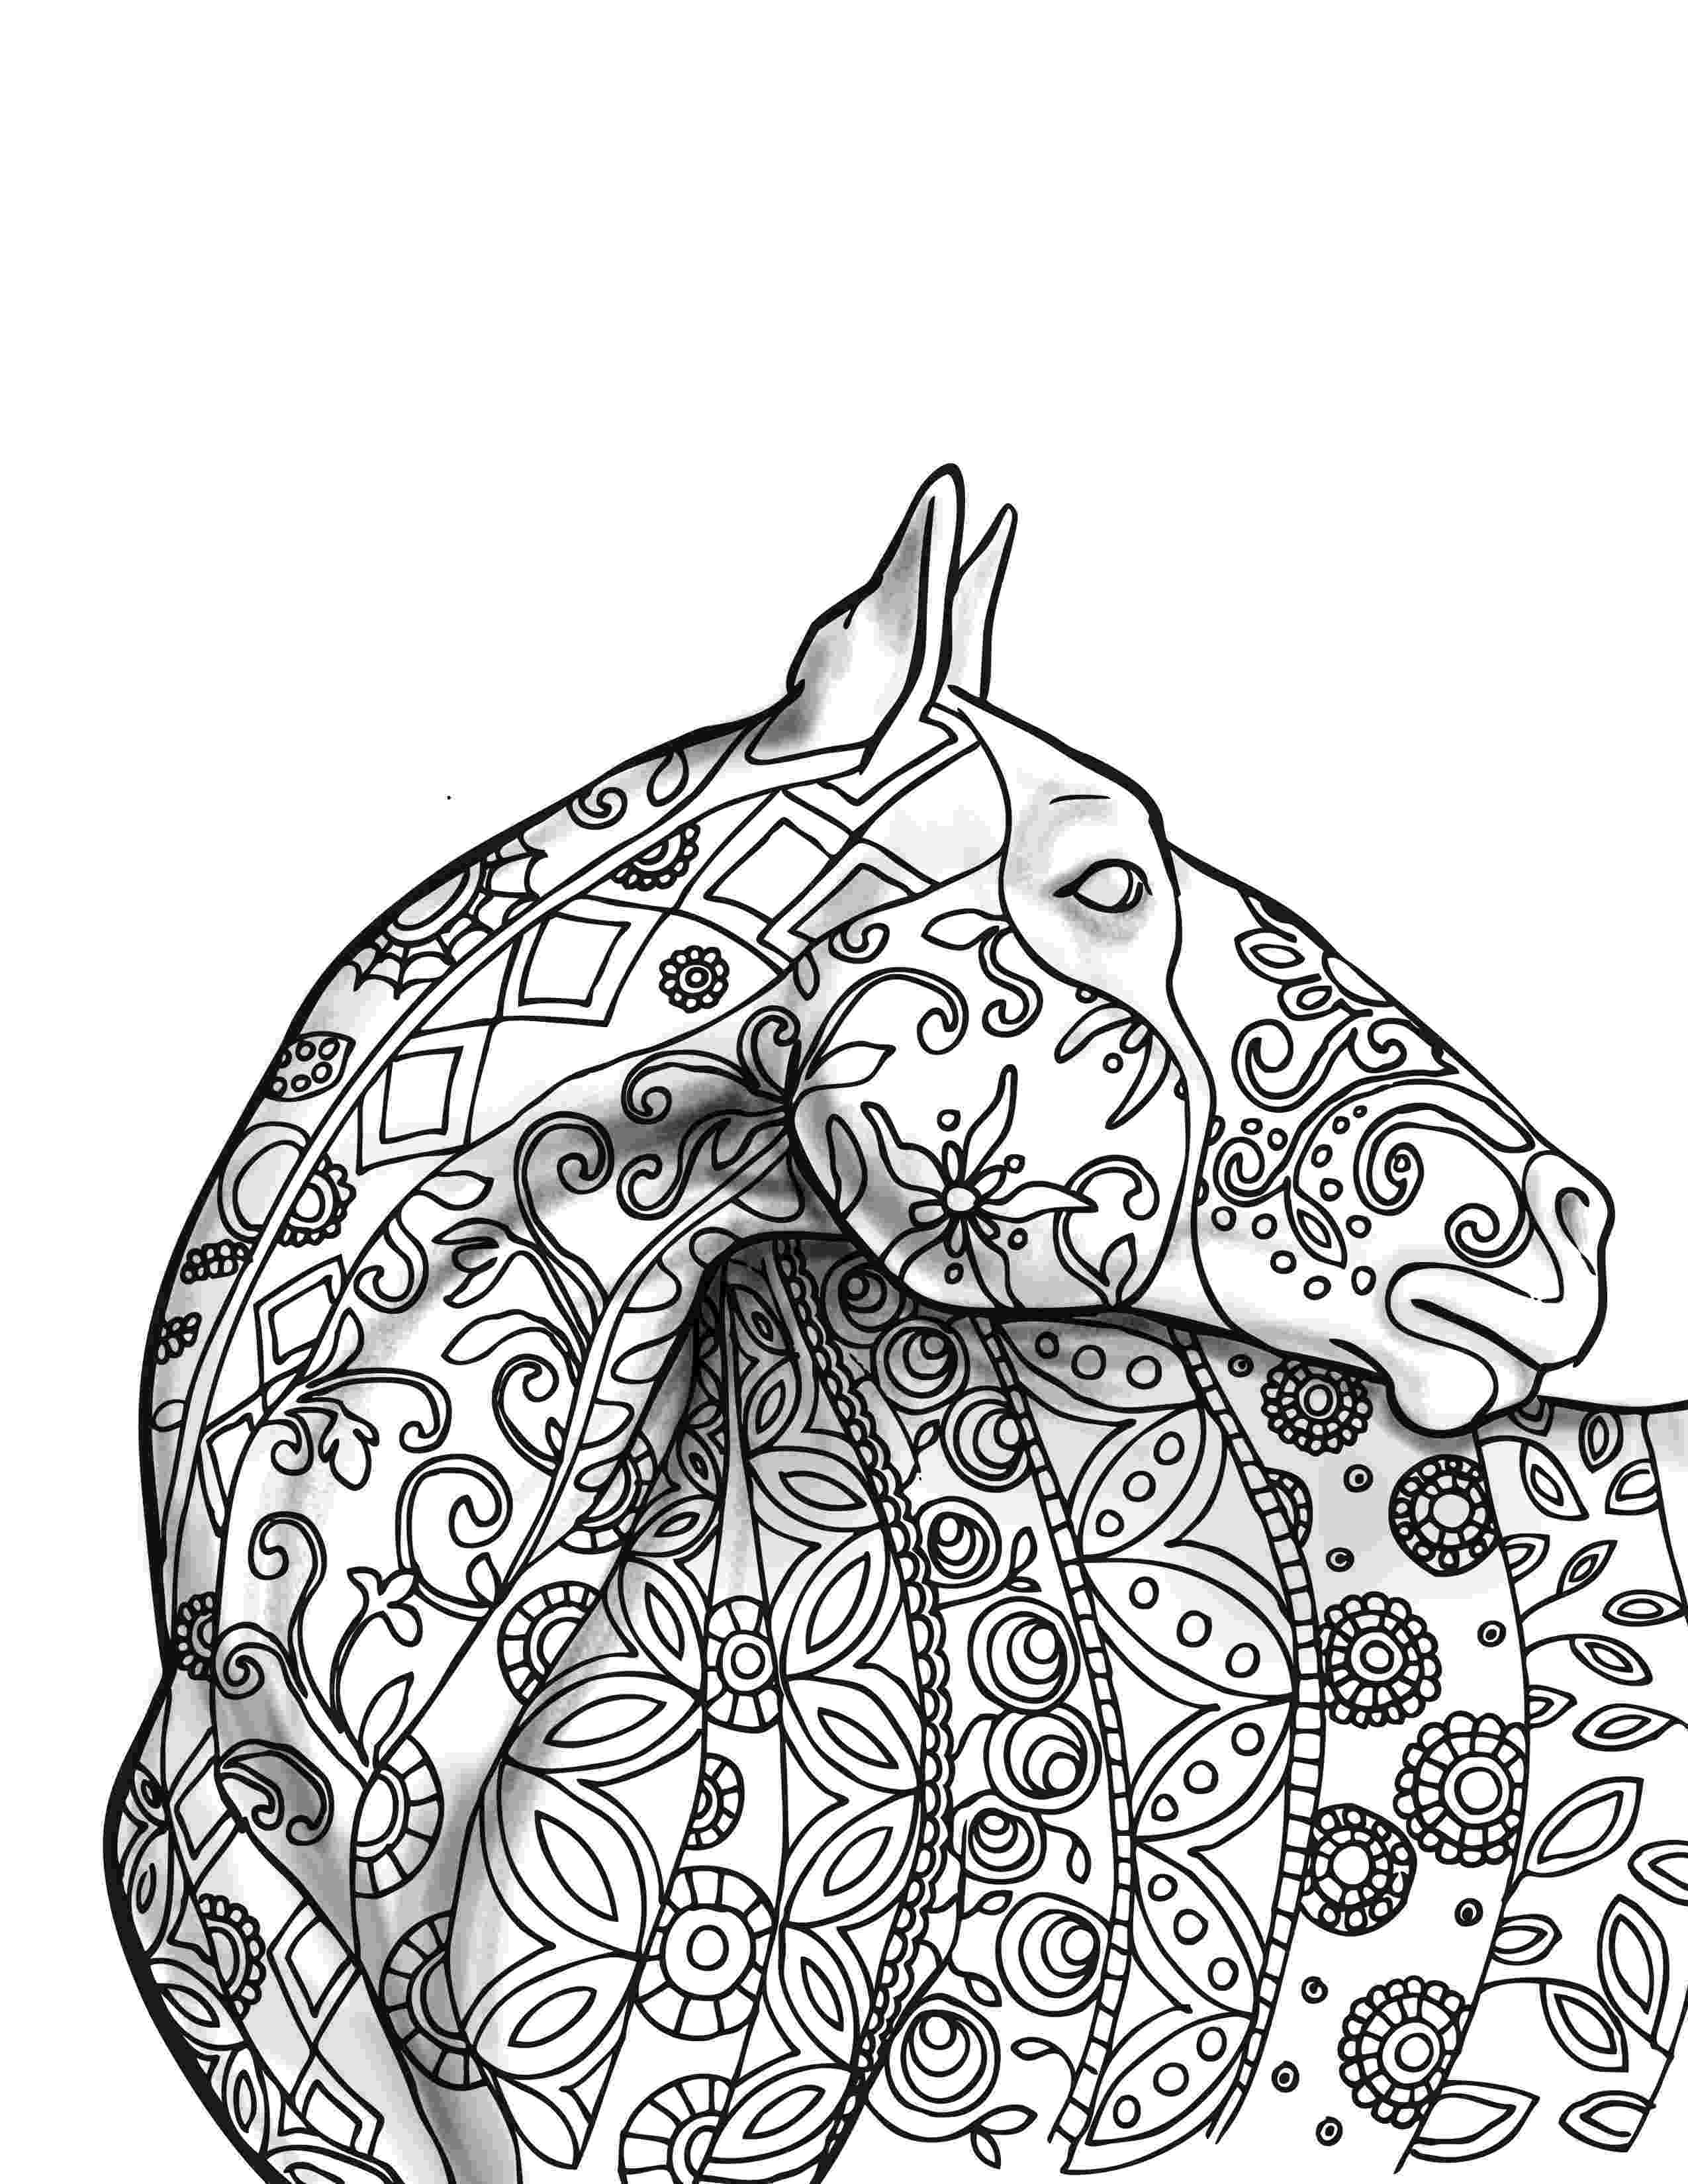 printable horse coloring pages for adults coloring book samples selah works adult coloring books coloring for adults printable pages horse